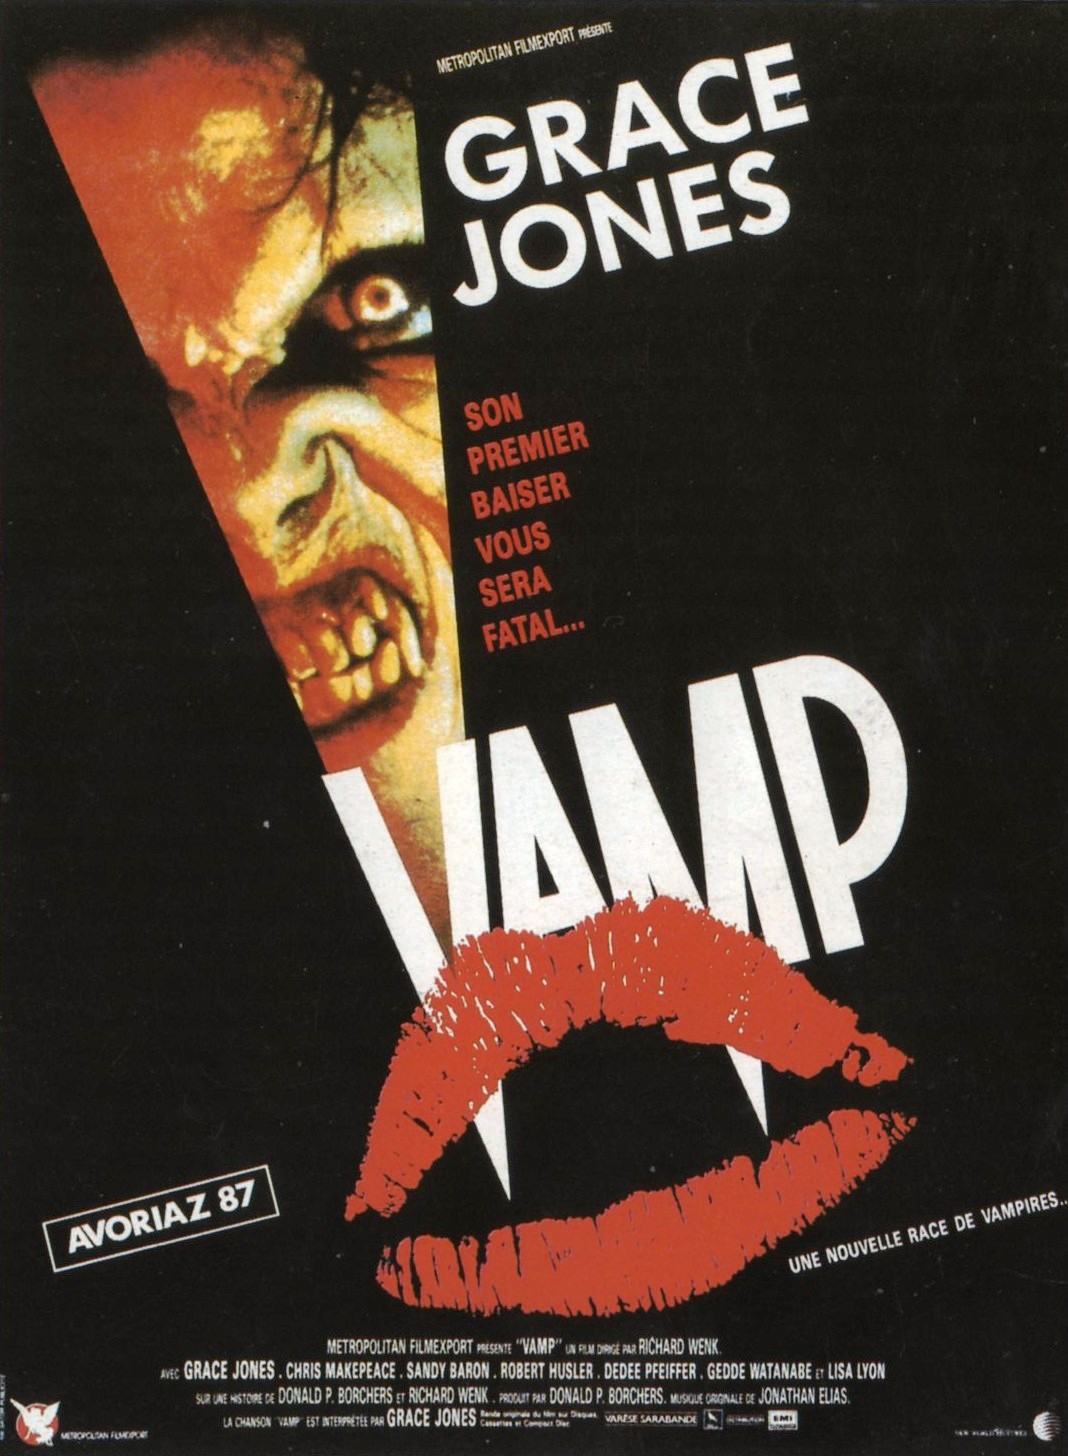 October 27th: Vamp (1986)